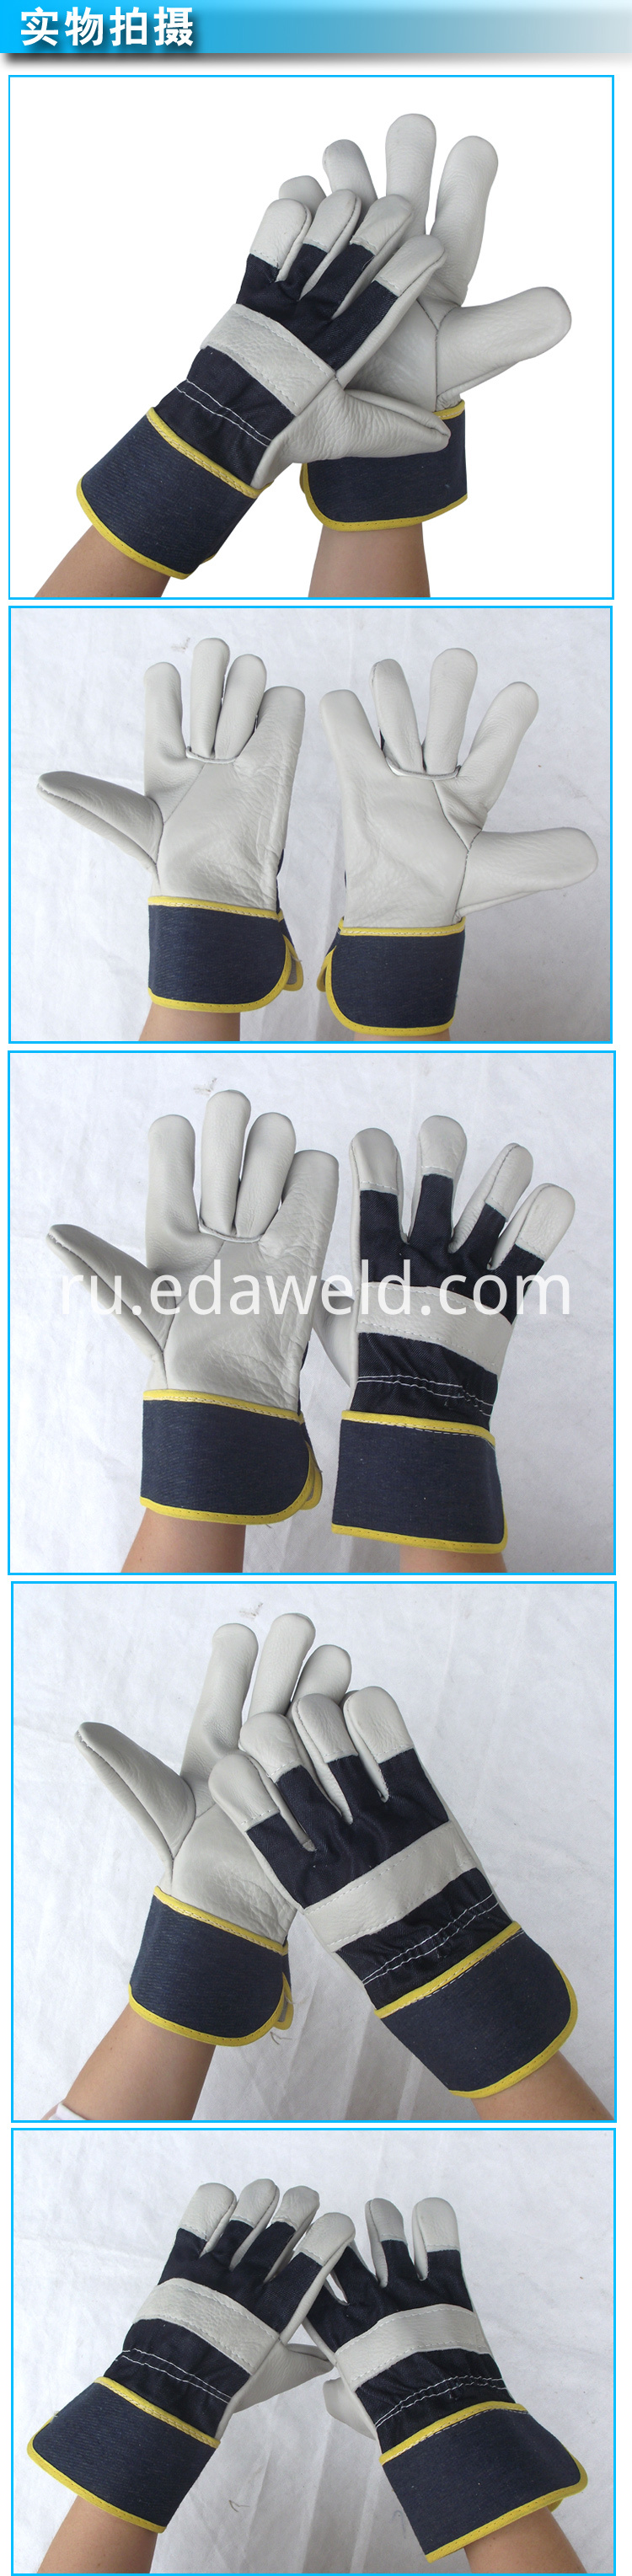 Wear-resisting Welding Gloves